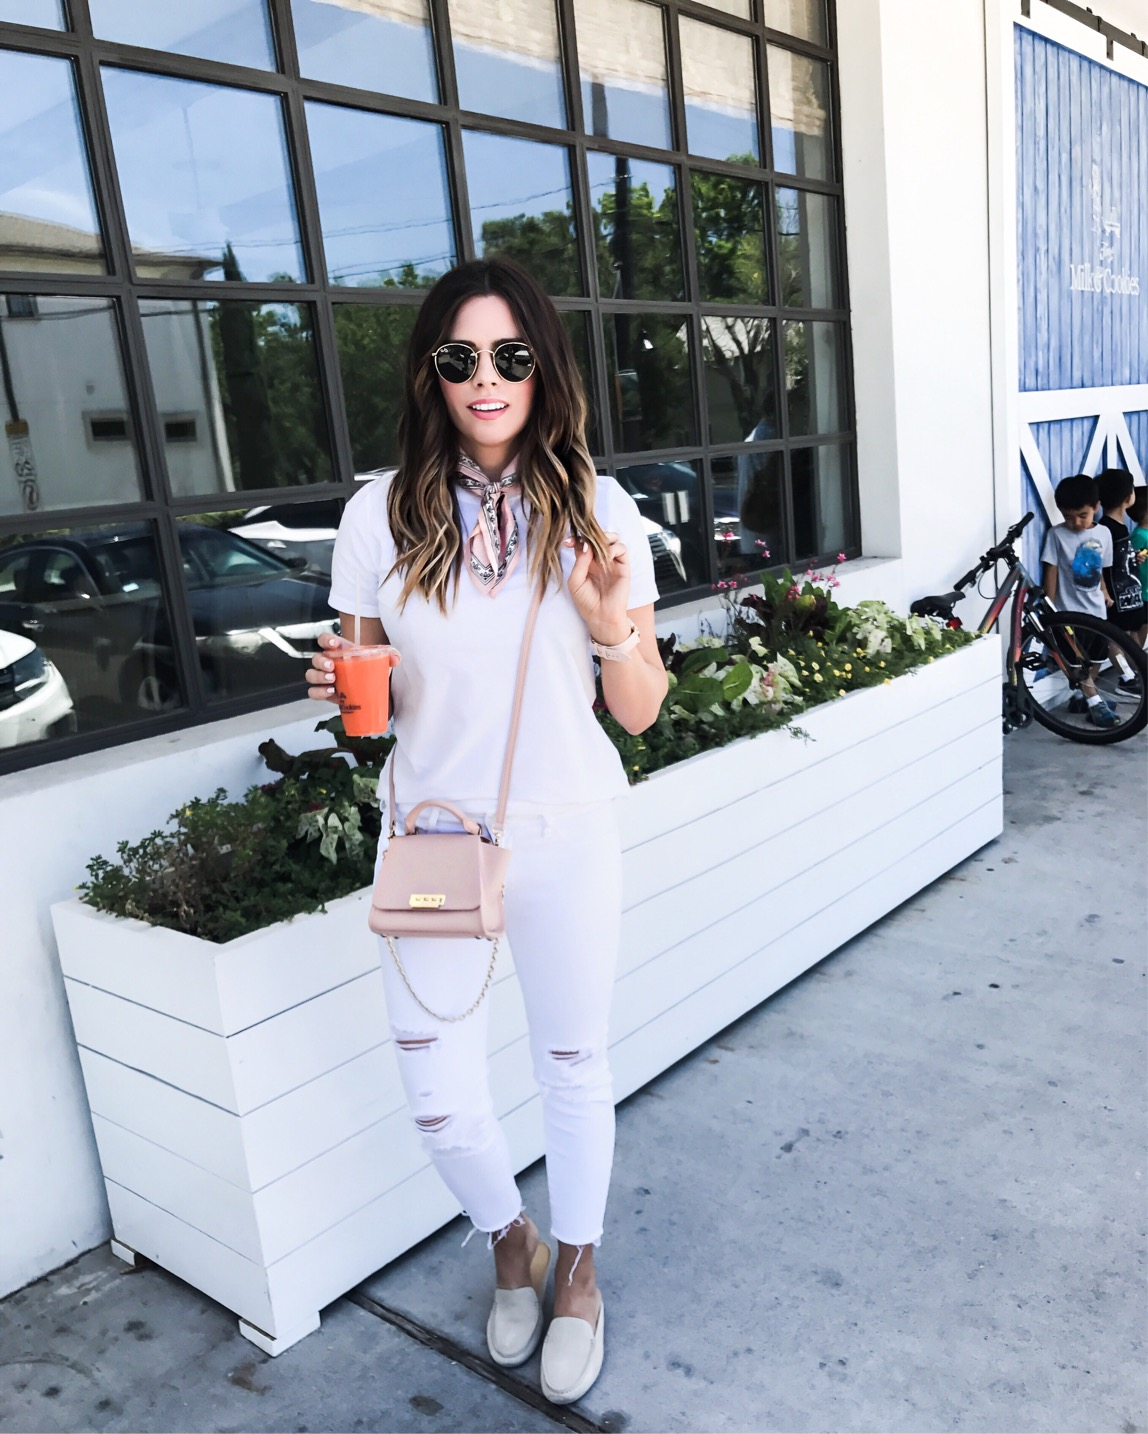 Tiffany Jais Houston fashion and lifestyle blogger |